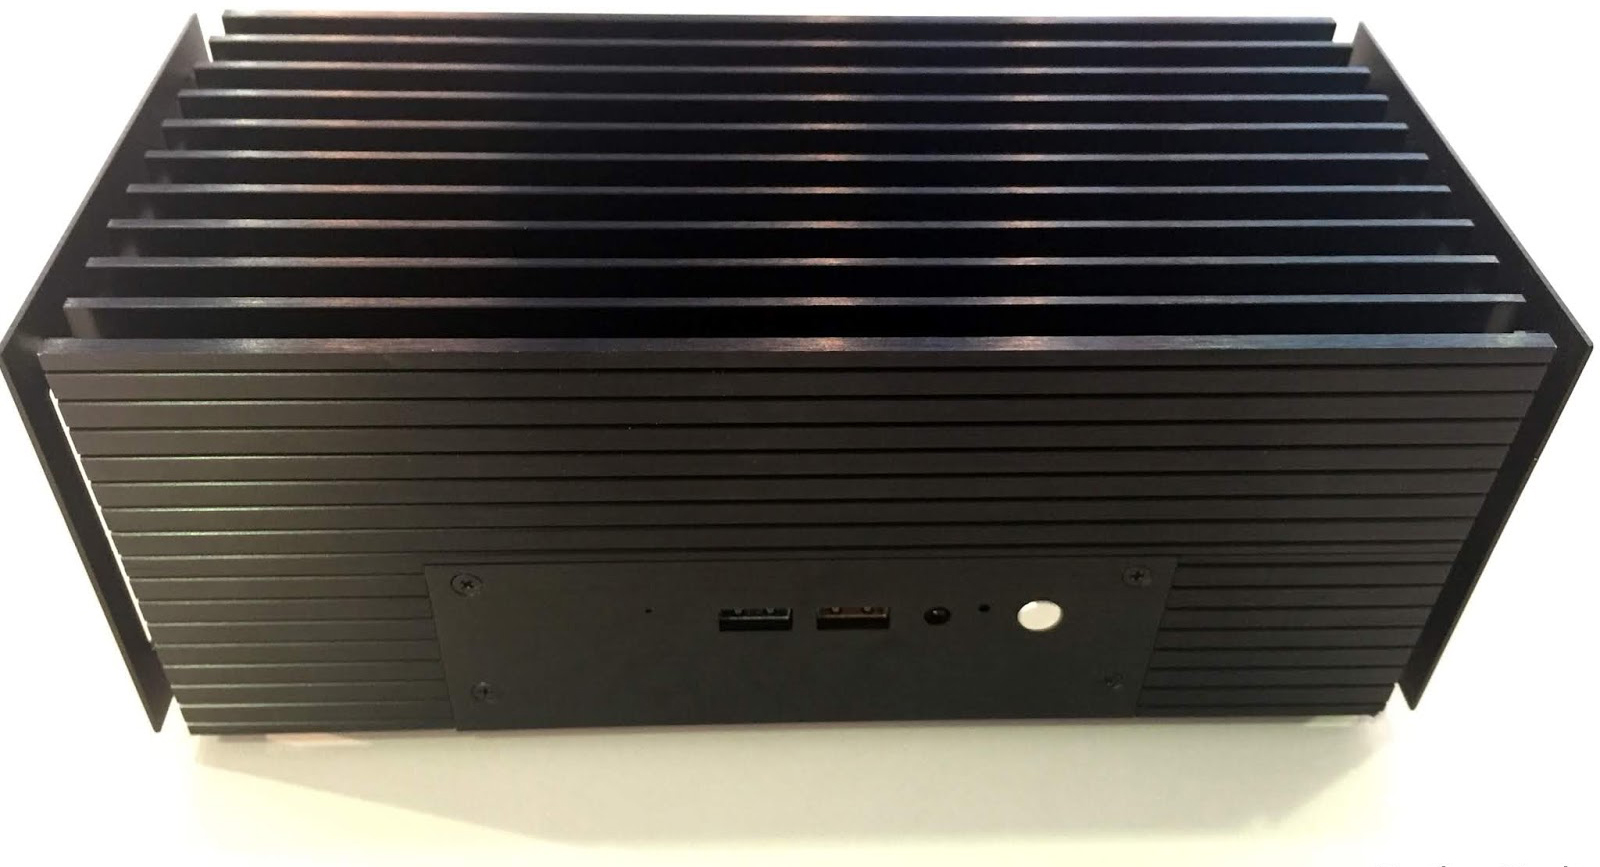 Akasa's Turing: A Passively-Cooled Chassis for Intel's Bean Canyon NUC